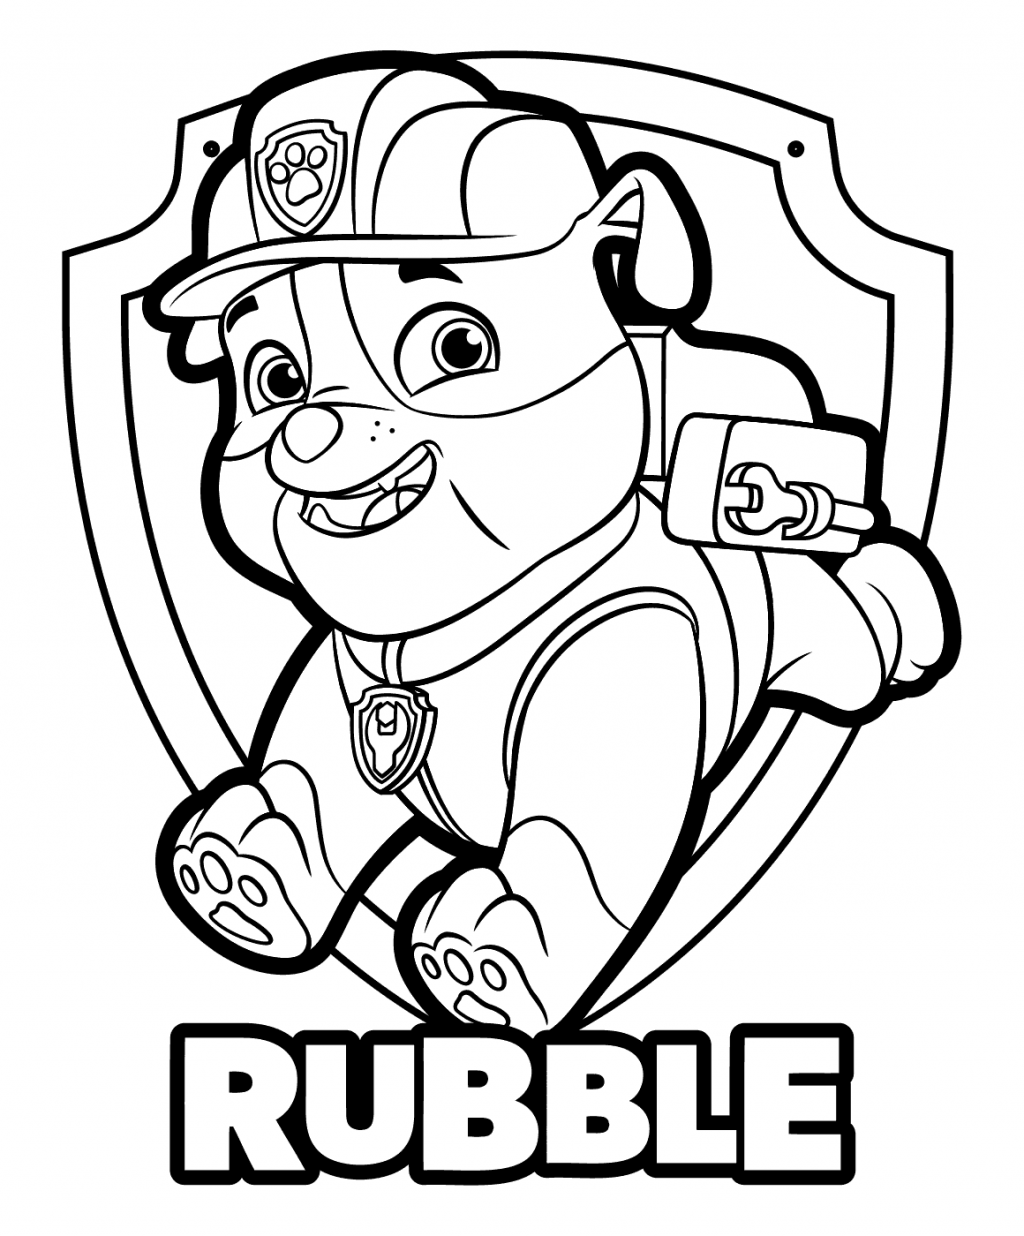 paw patrol pictures to print 15 best paw patrol coloring pages visual arts ideas patrol to paw print pictures